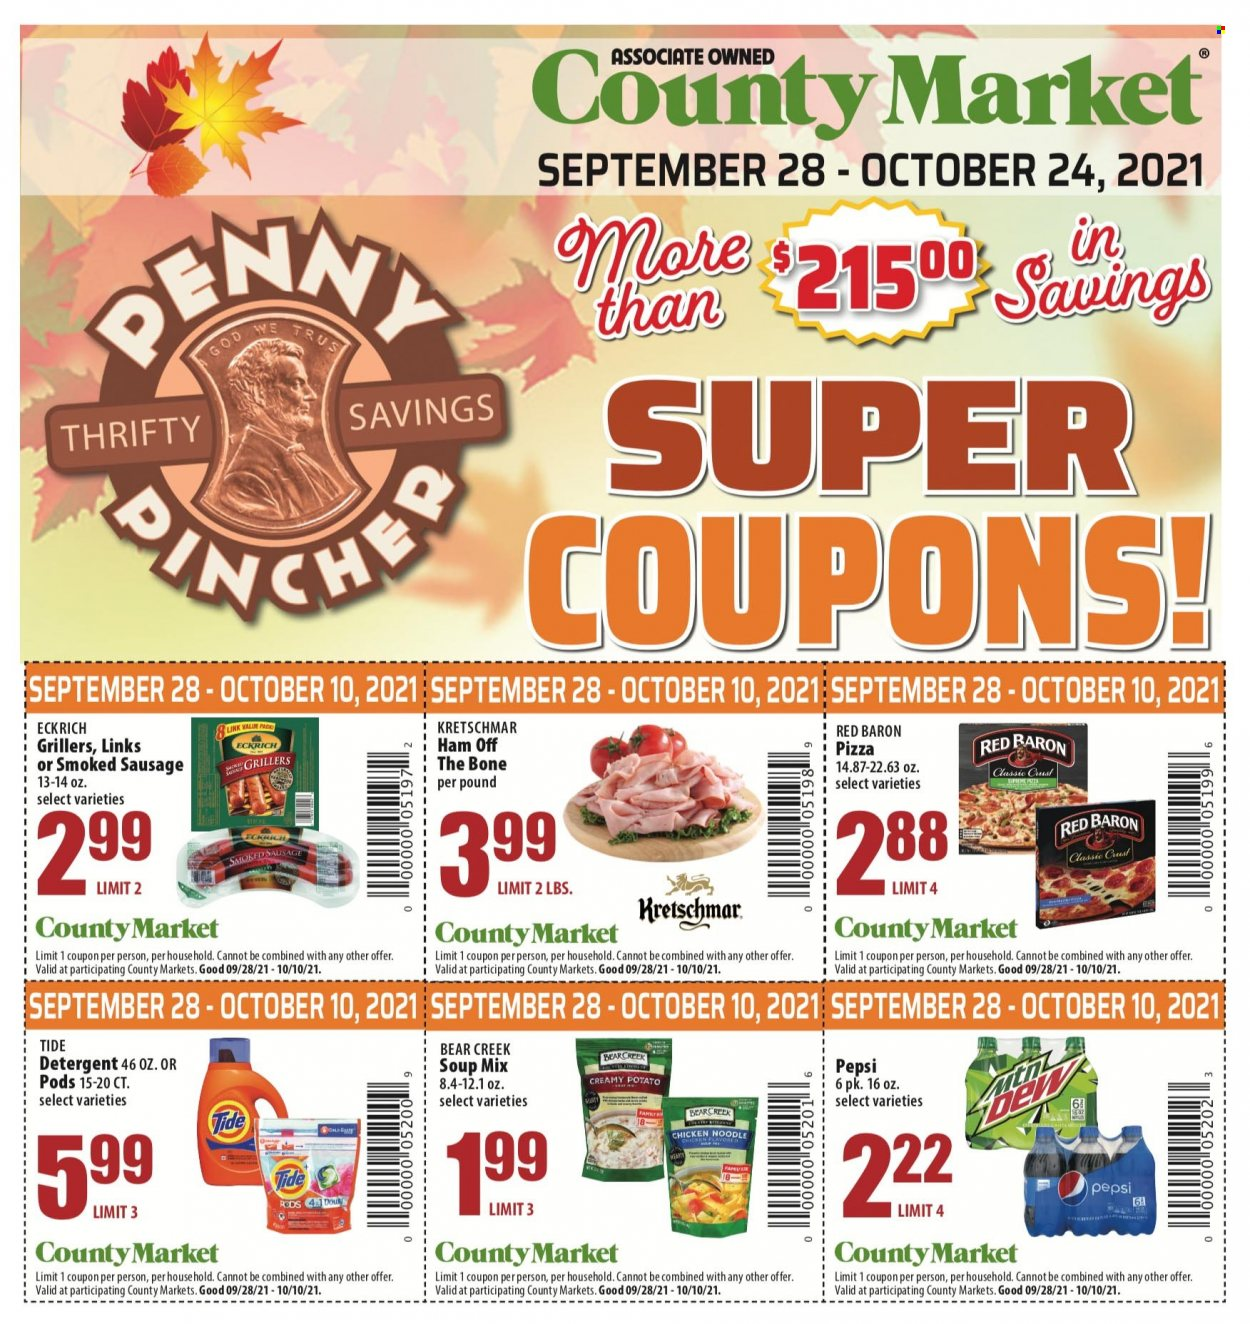 County Market Coupons from september 28 to october 24 2021 - Page 1